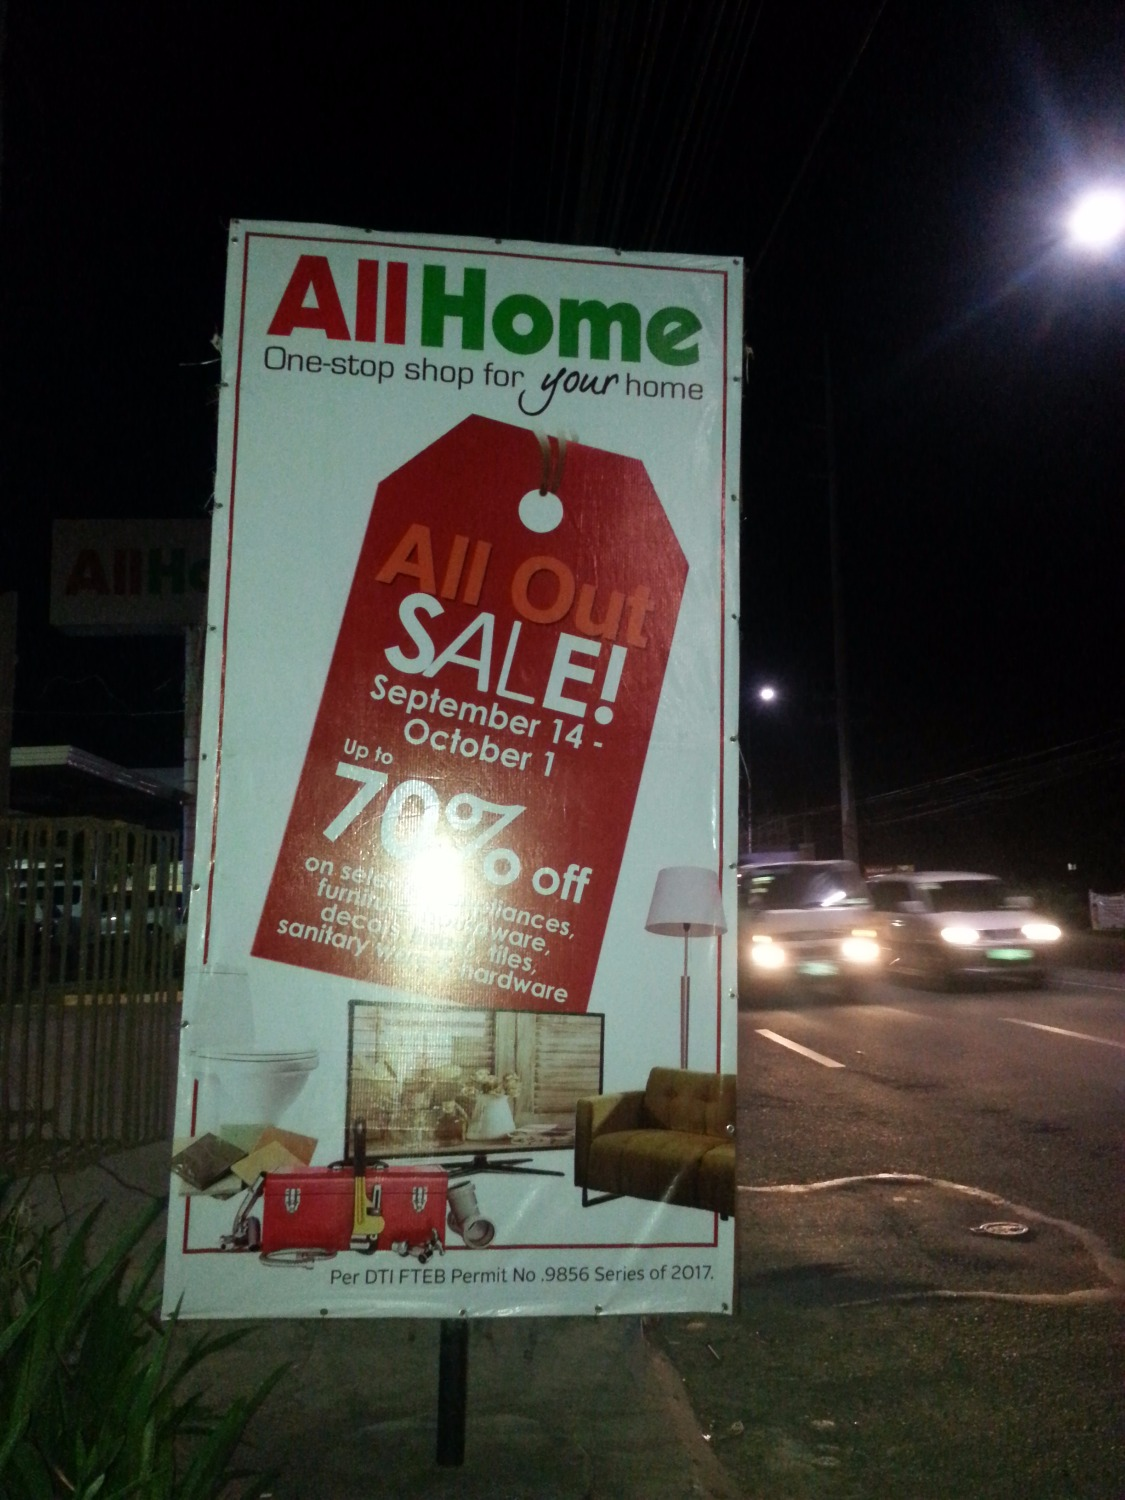 All Home's All Out Sale